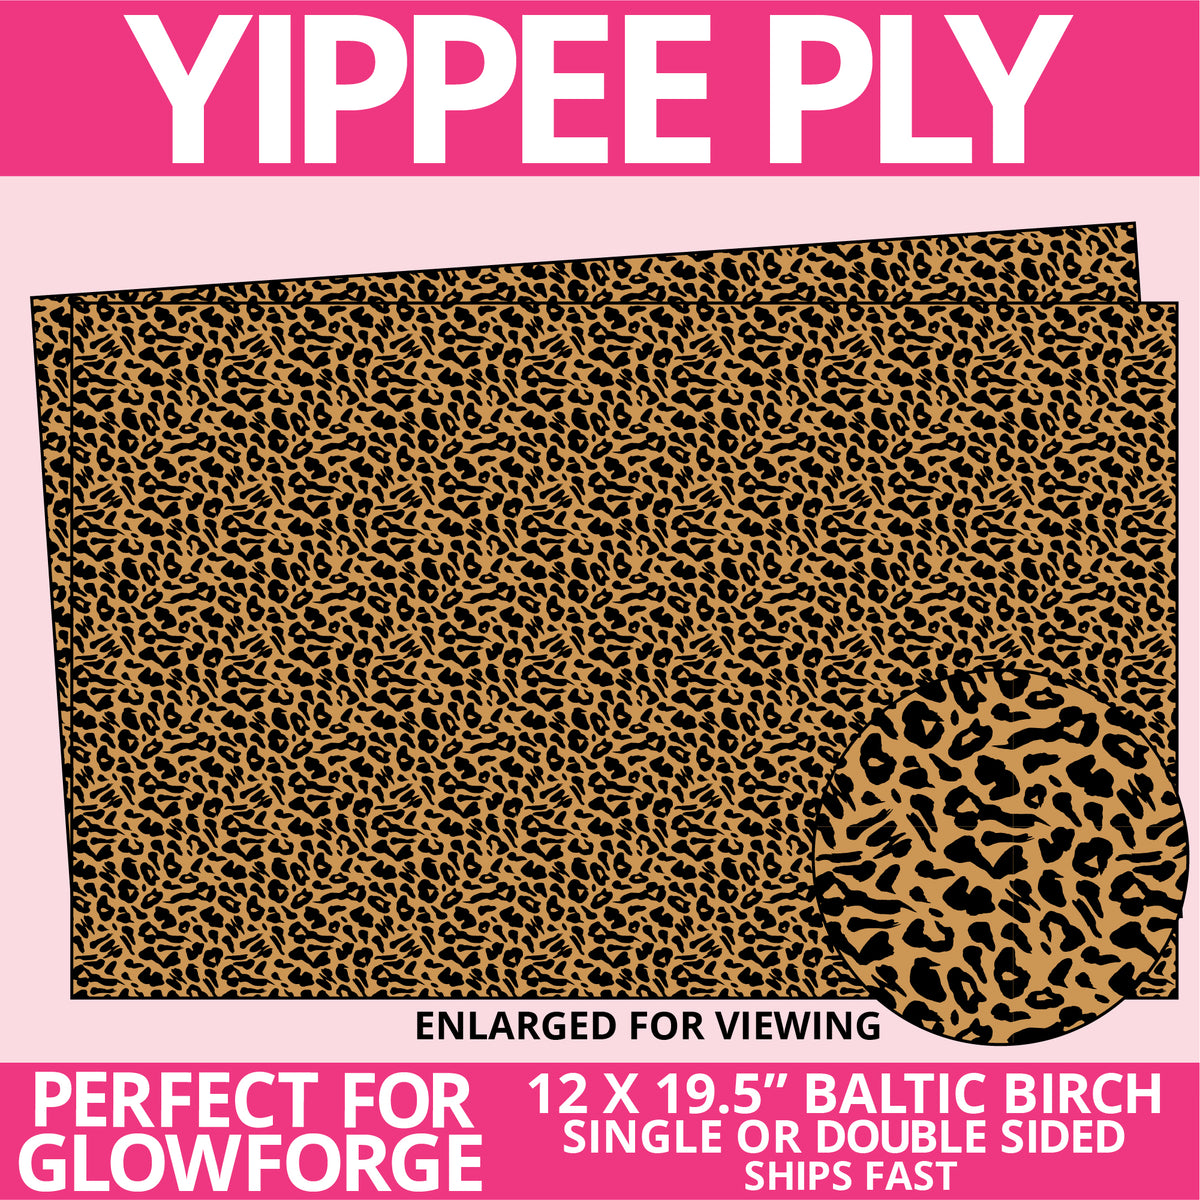 Yippee Ply Leopard Pattern on Birch Plywood 1035